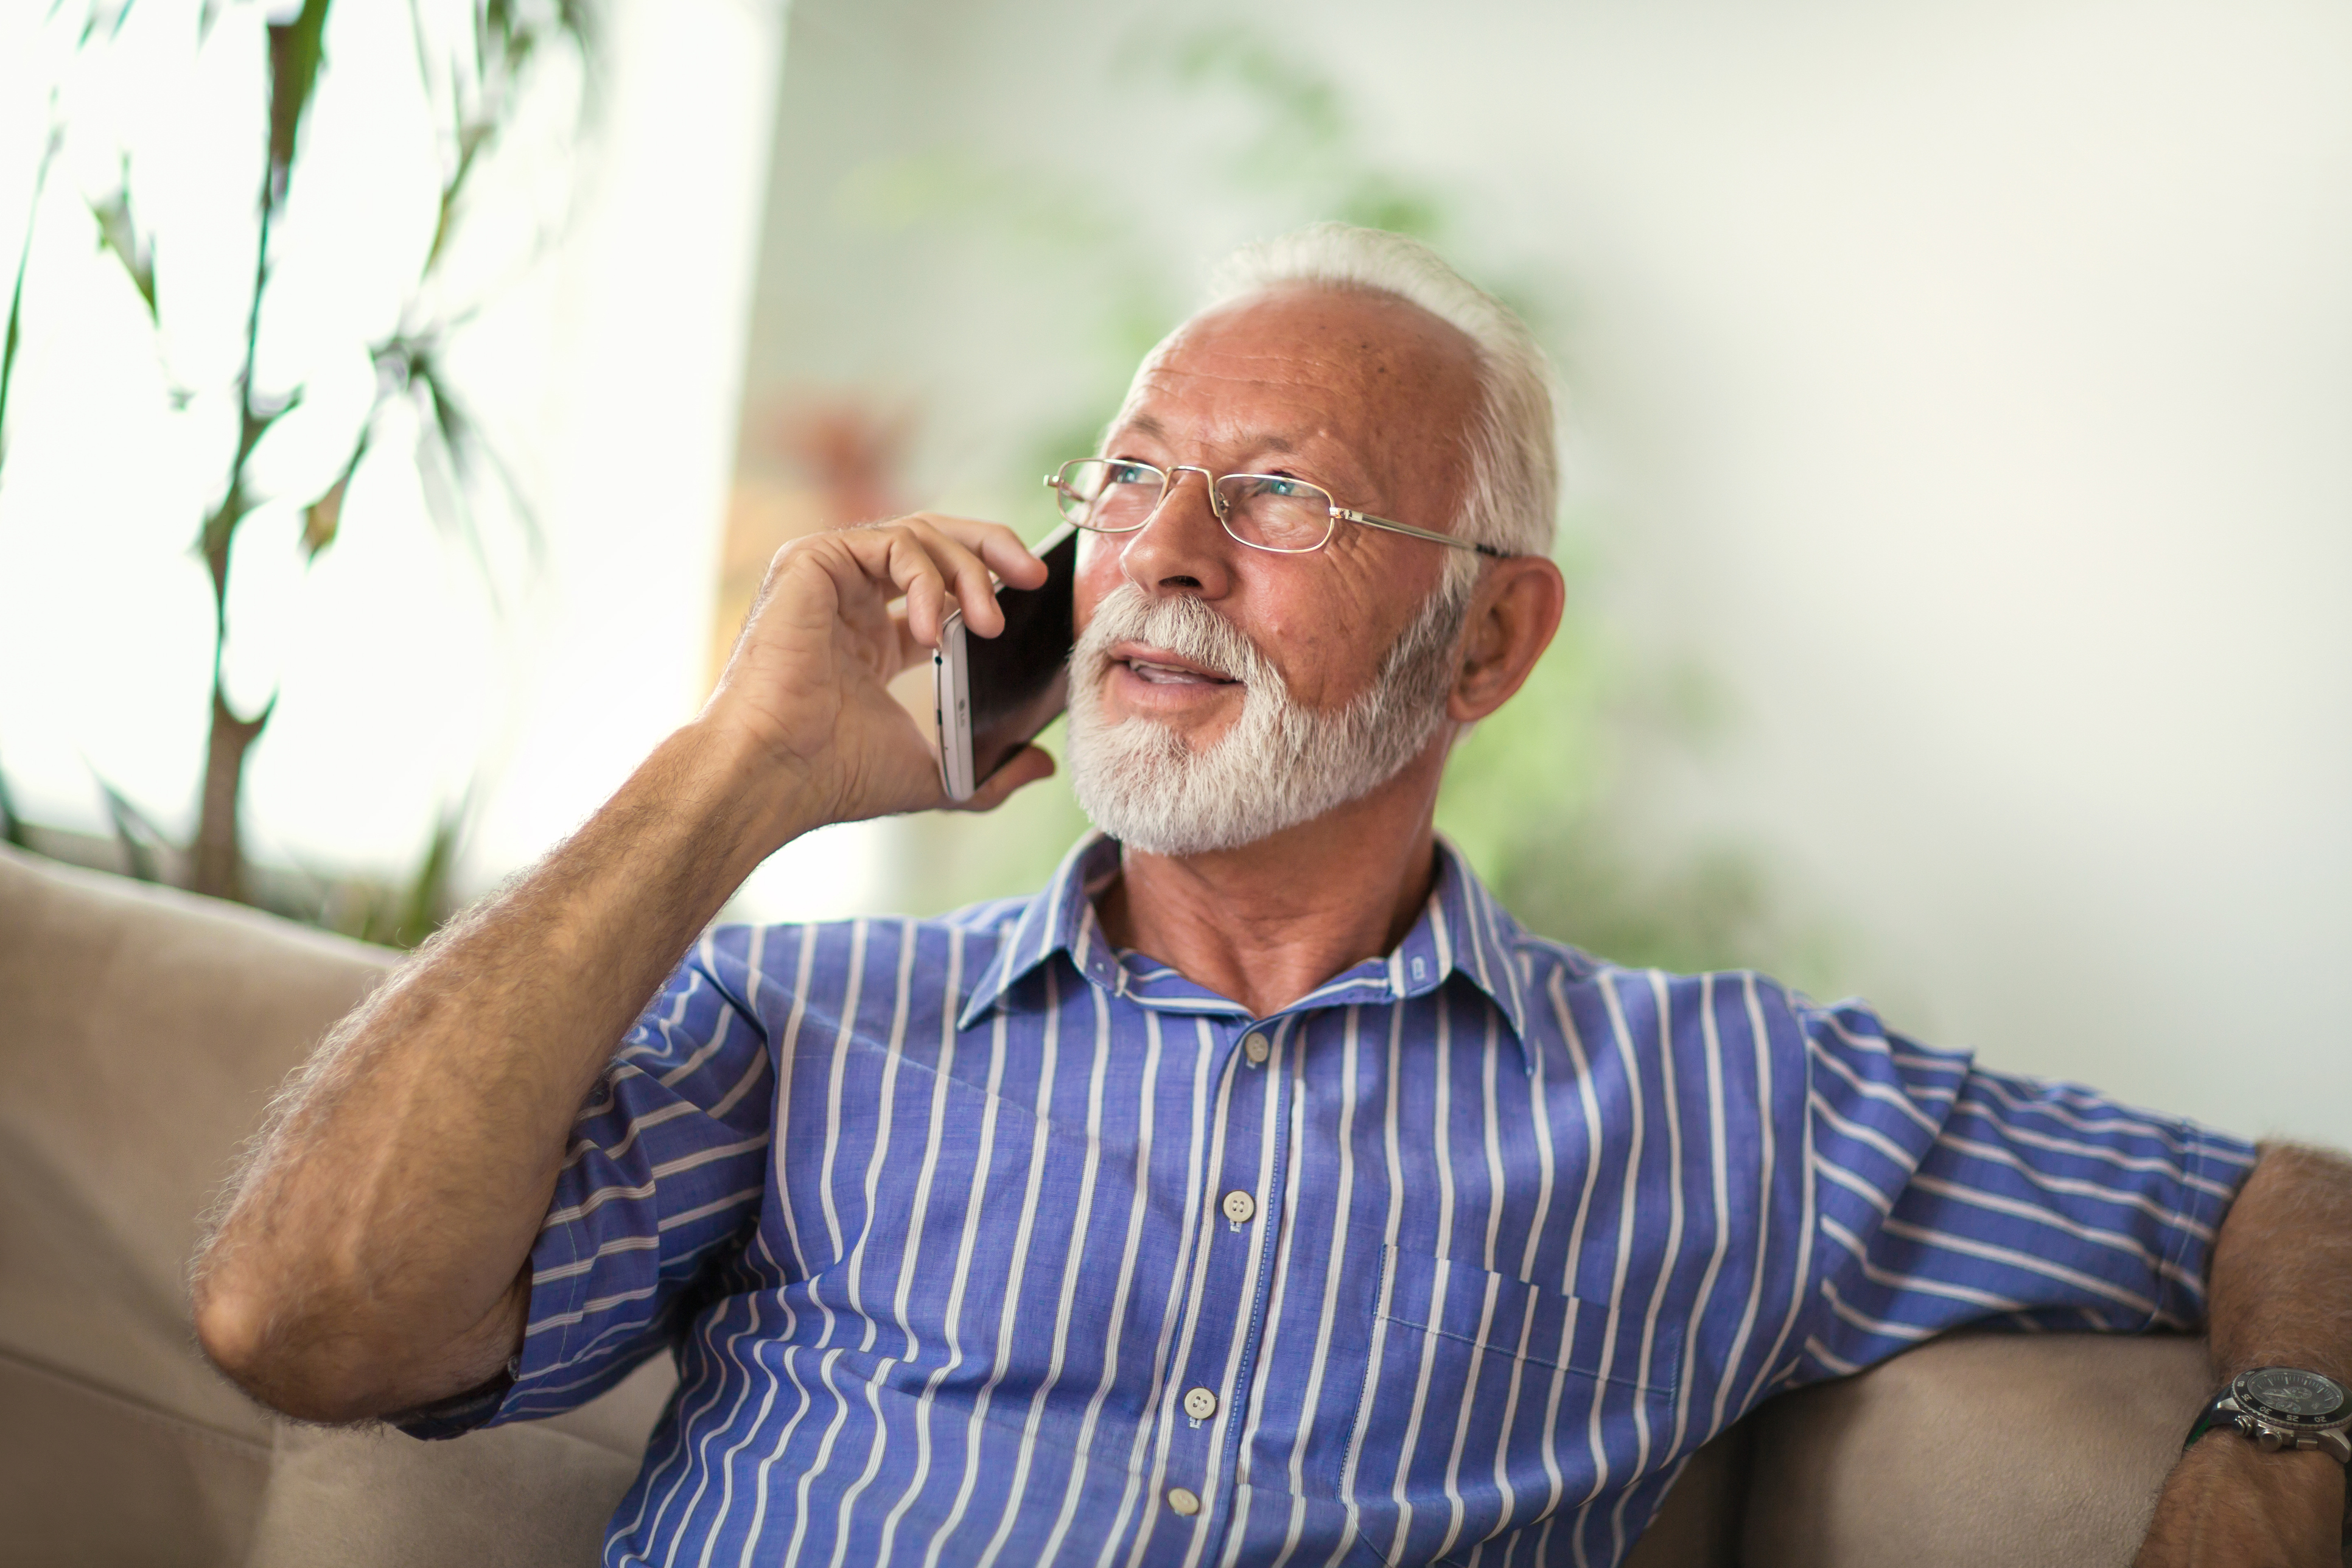 Elderly man sitting on the couch and talking on a mobile phone